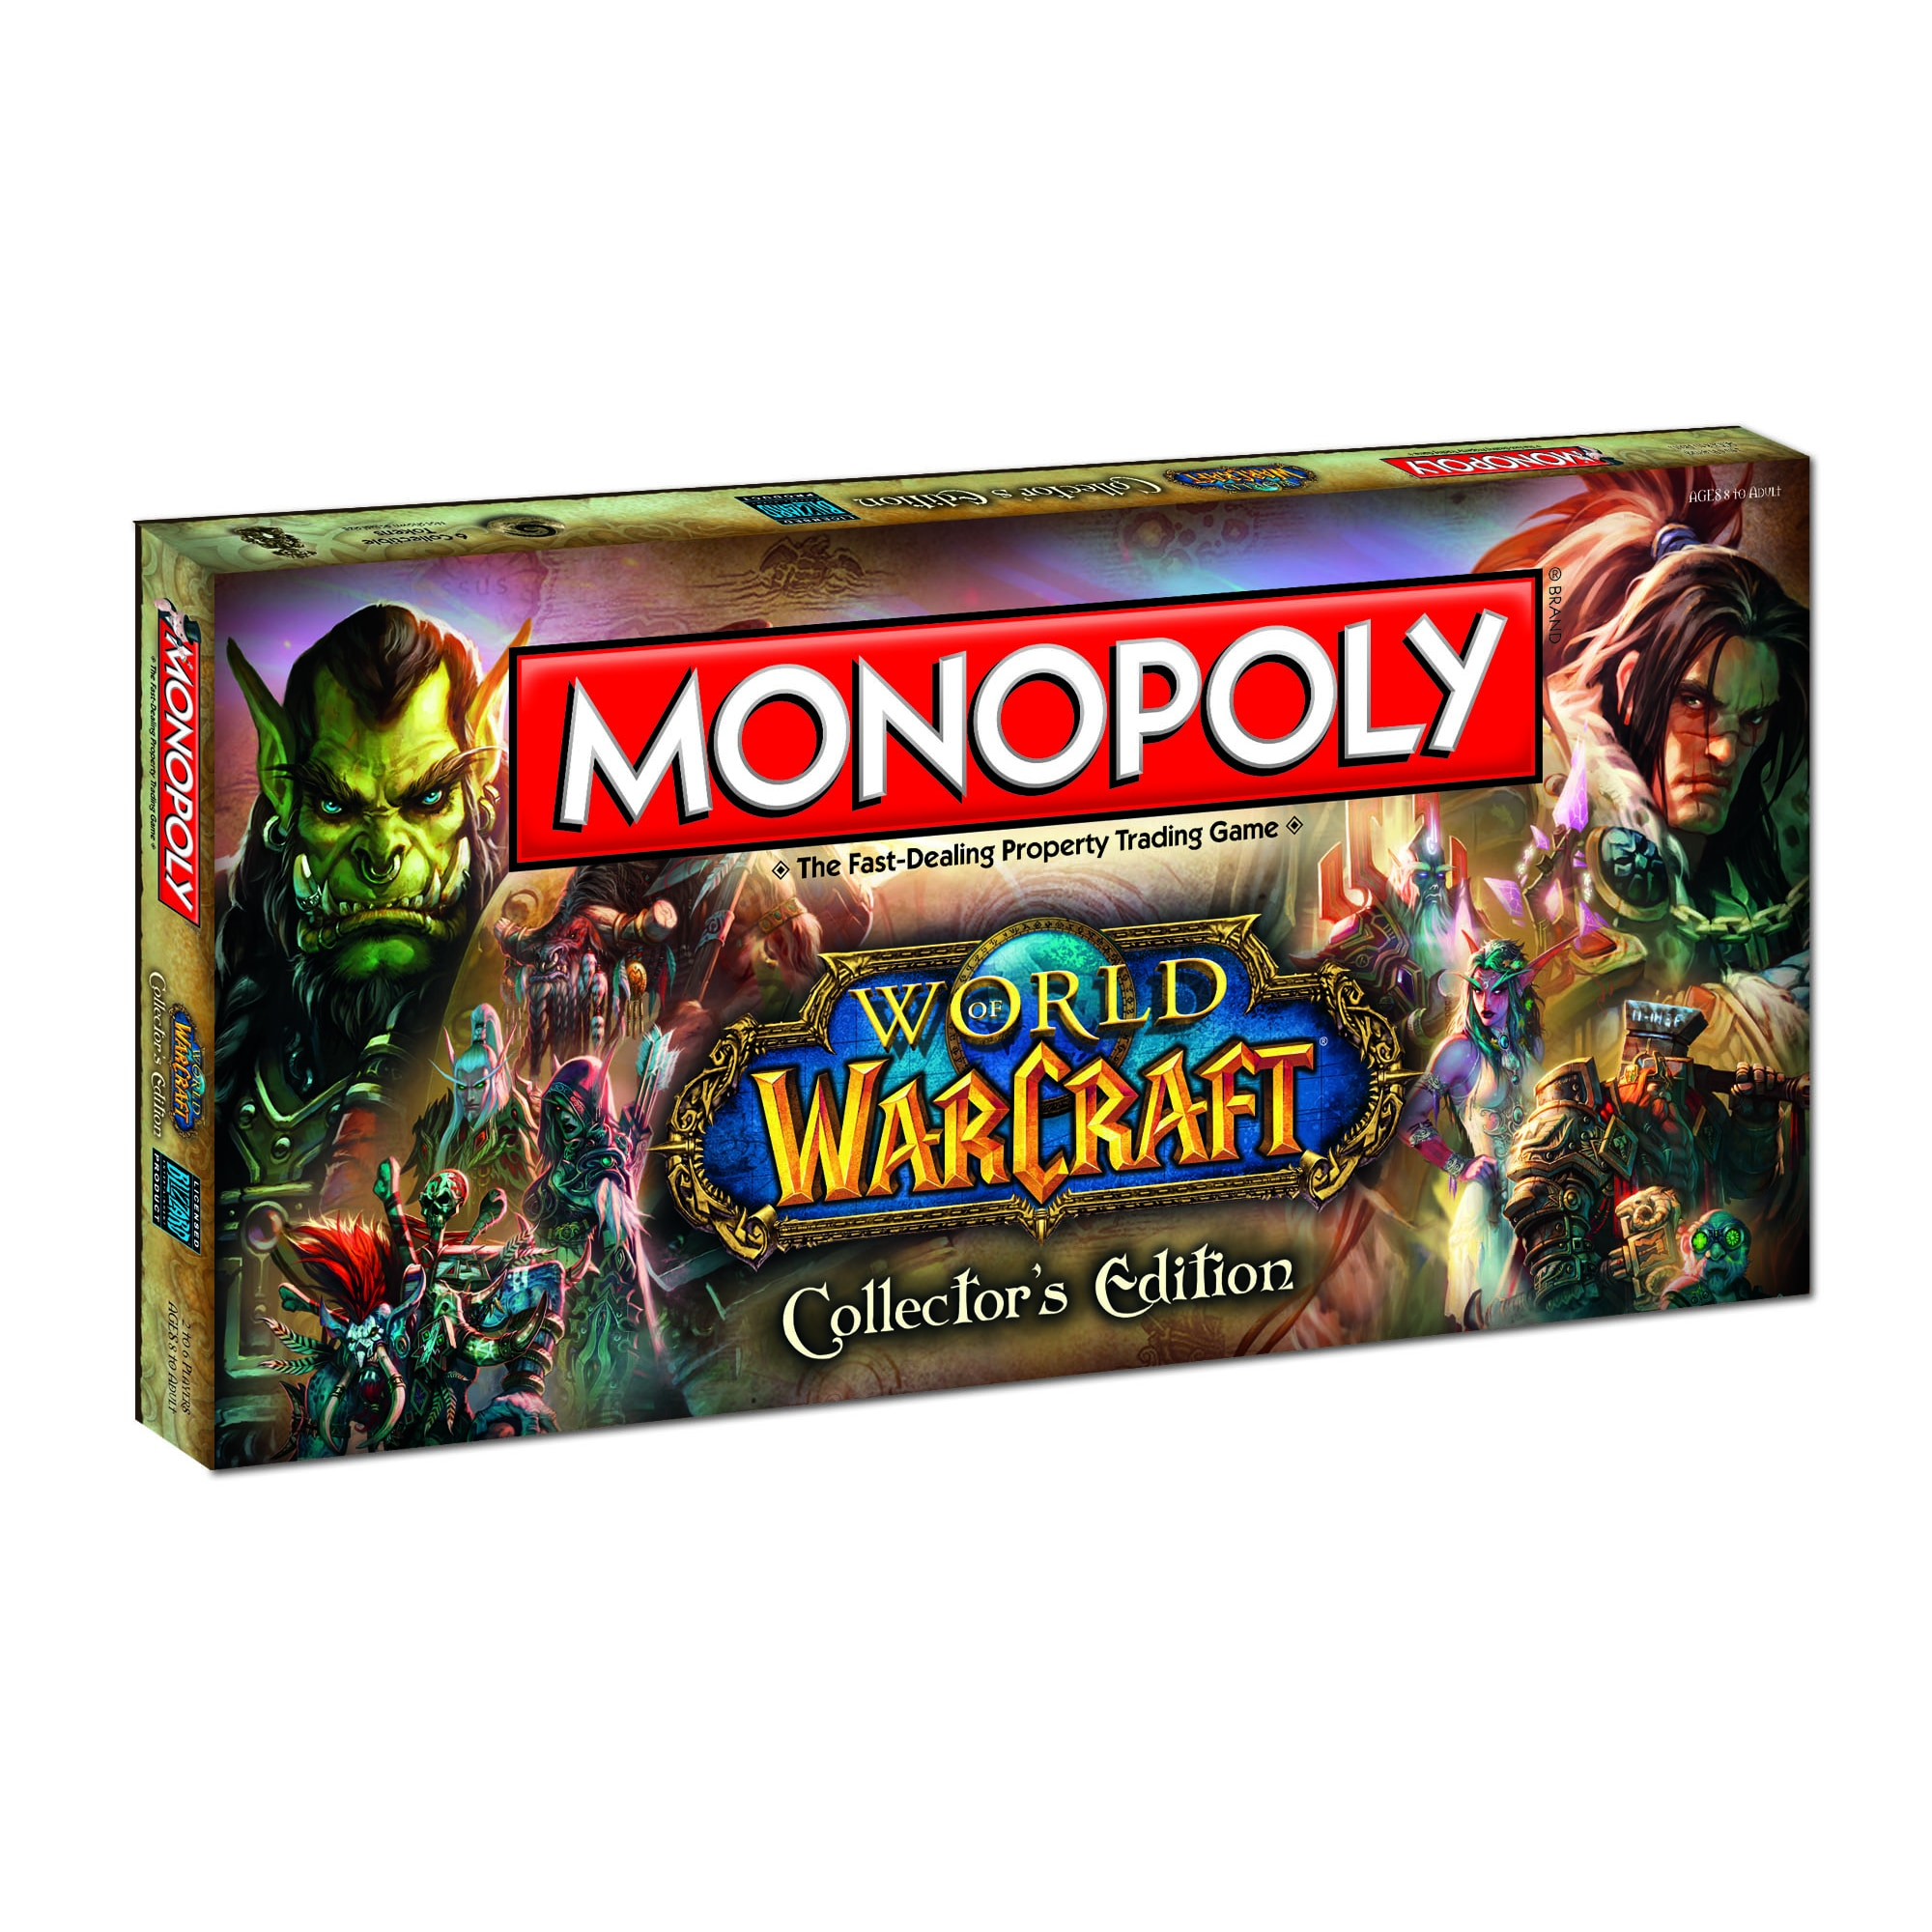 USAopoly Monopoly World of Warcraft Collector's Edition Game at Sears.com